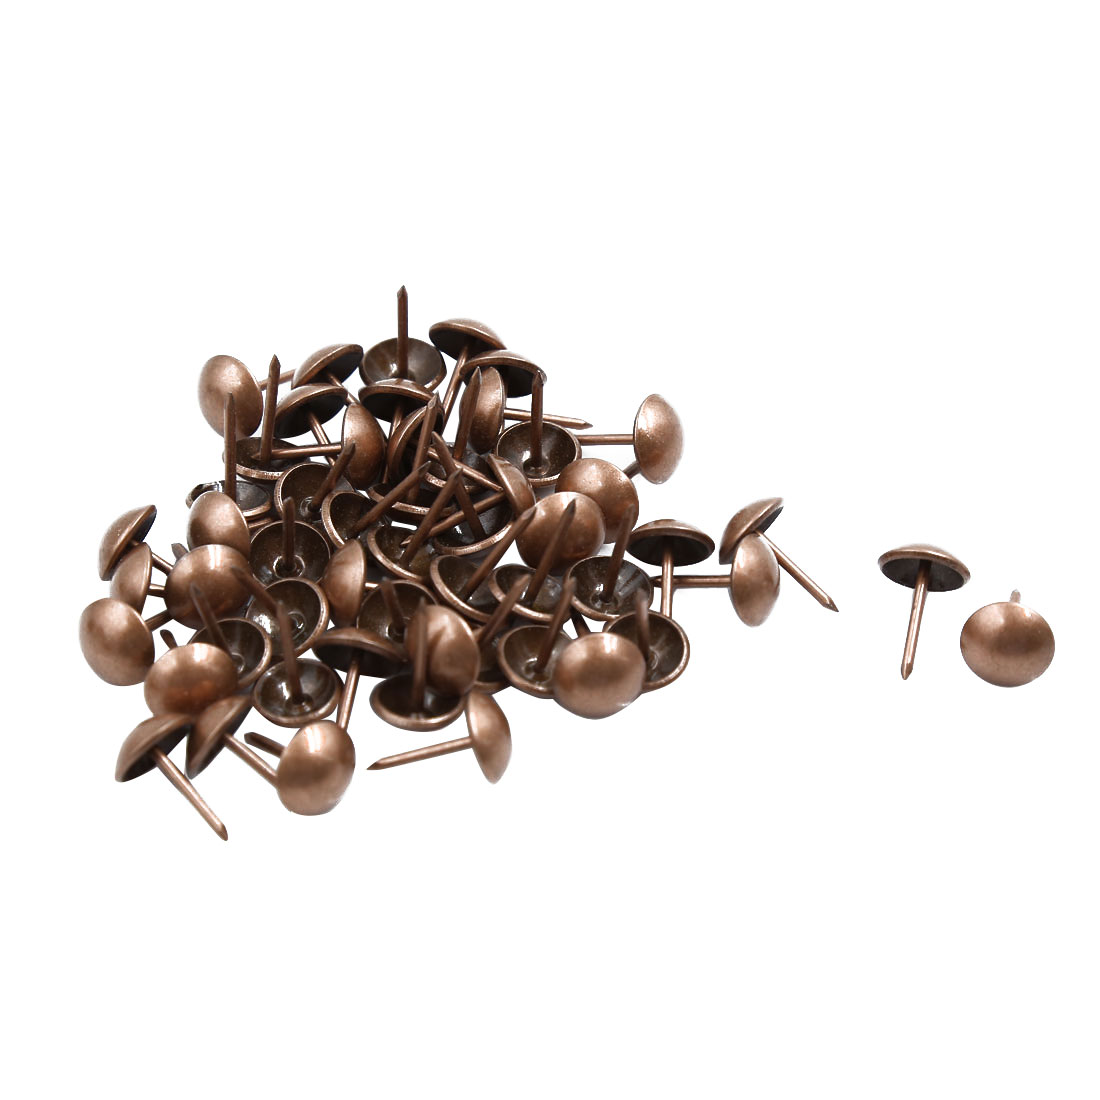 Office School Corkboards Message Boards Thumb Tacks Pushpins Copper Tone 50pcs